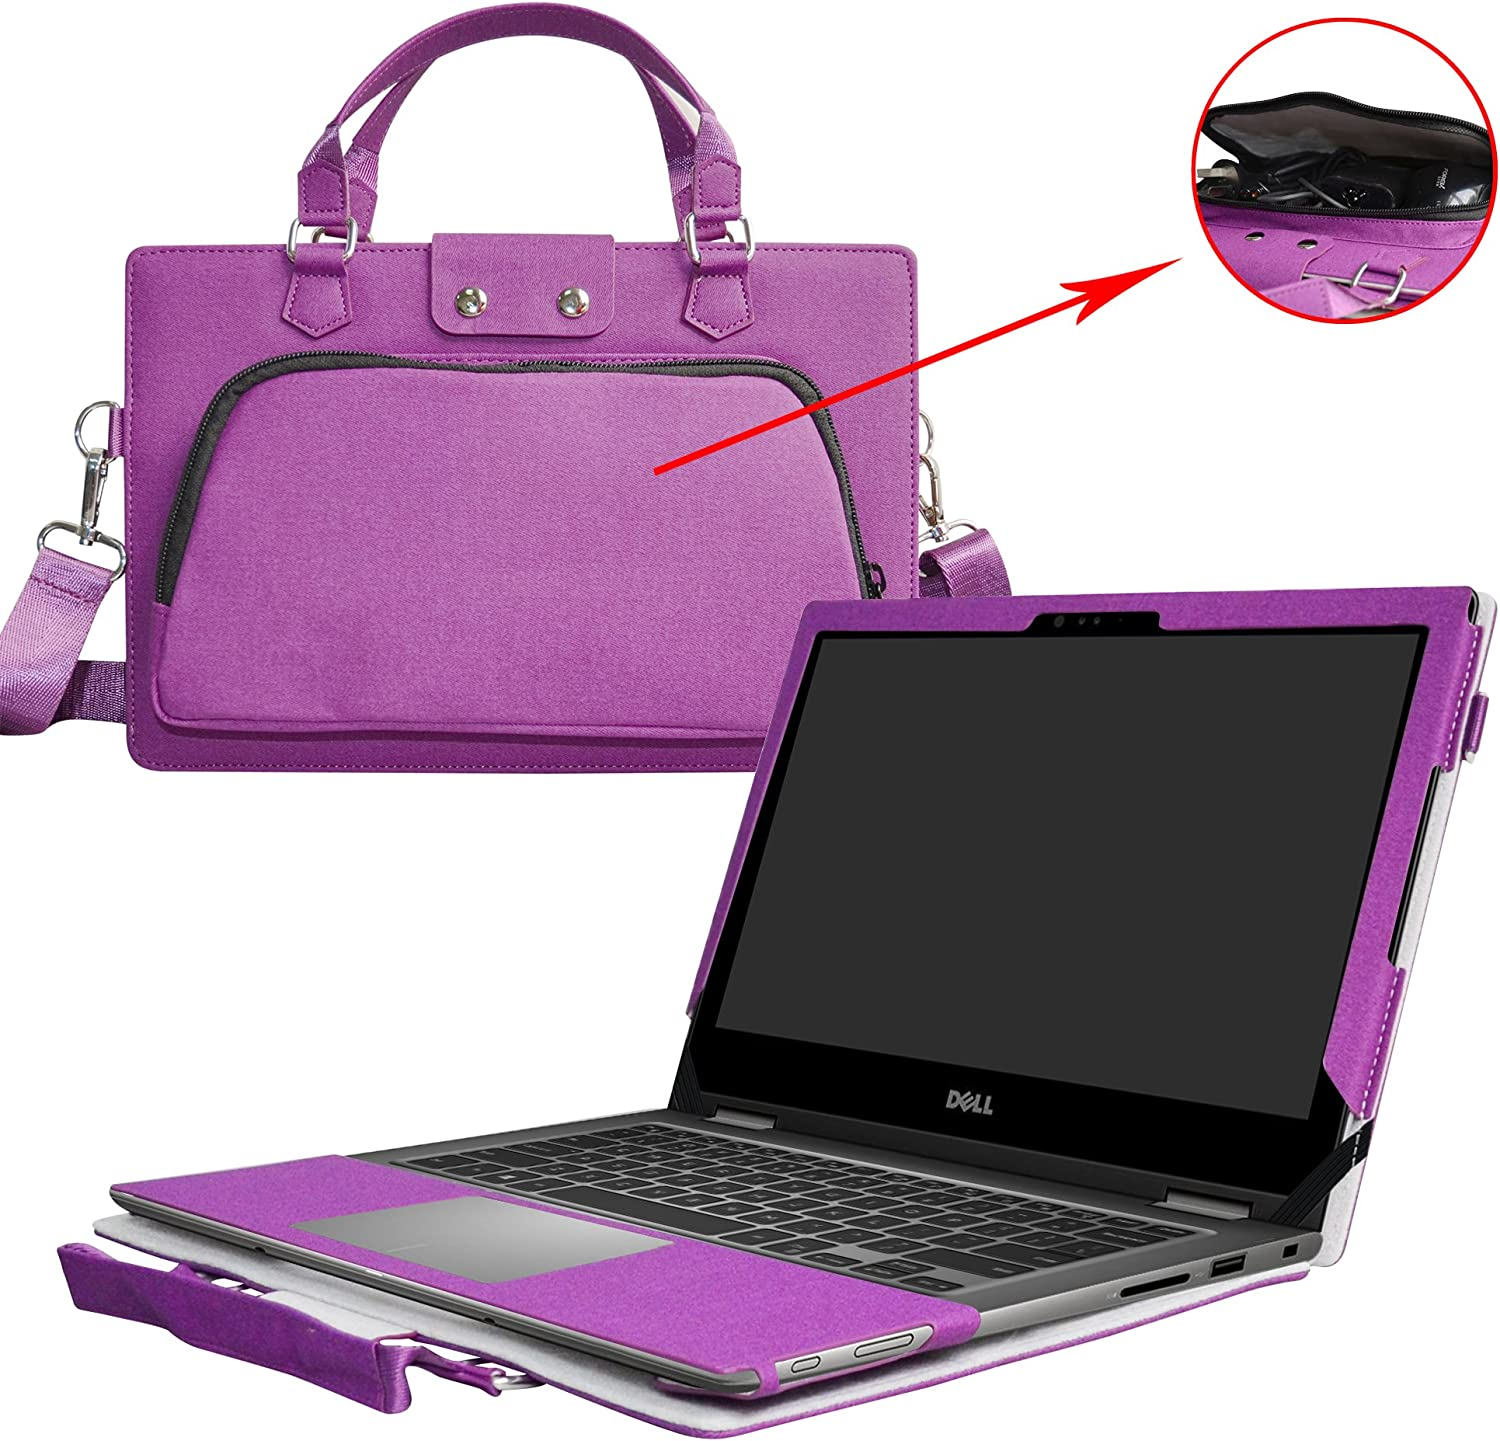 """Inspiron 13 2-in-1 i7353 i7352 Case,2 in 1 Accurately Designed Protective PU Leather Cover + Portable Carrying Bag for 13.3"""" Dell Inspiron 13 2-in-1 7000 Series 7353 7352 Laptop,Purple"""